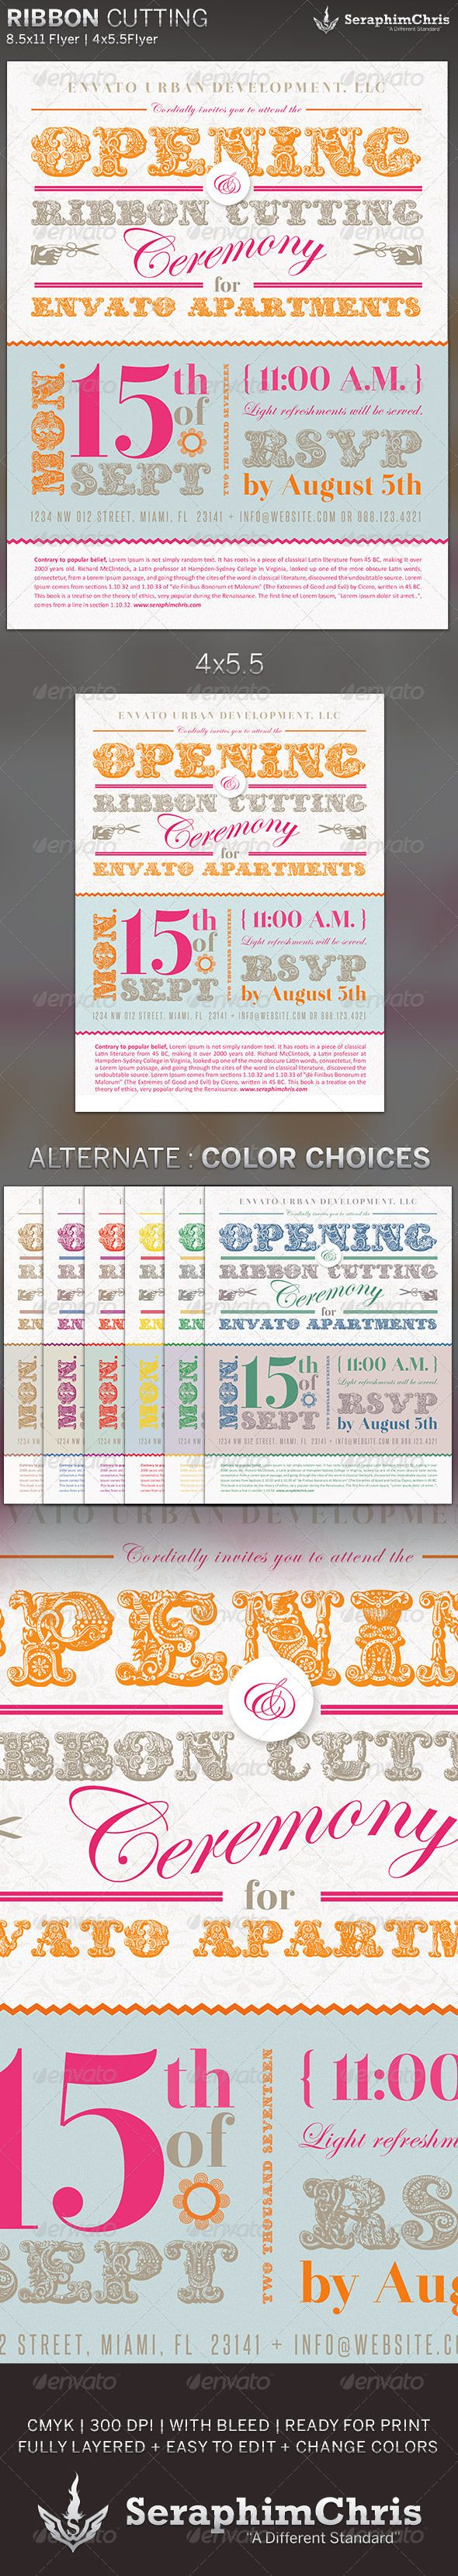 ribbon cutting flyer invite template 6 00 this ribbon cutting flyer